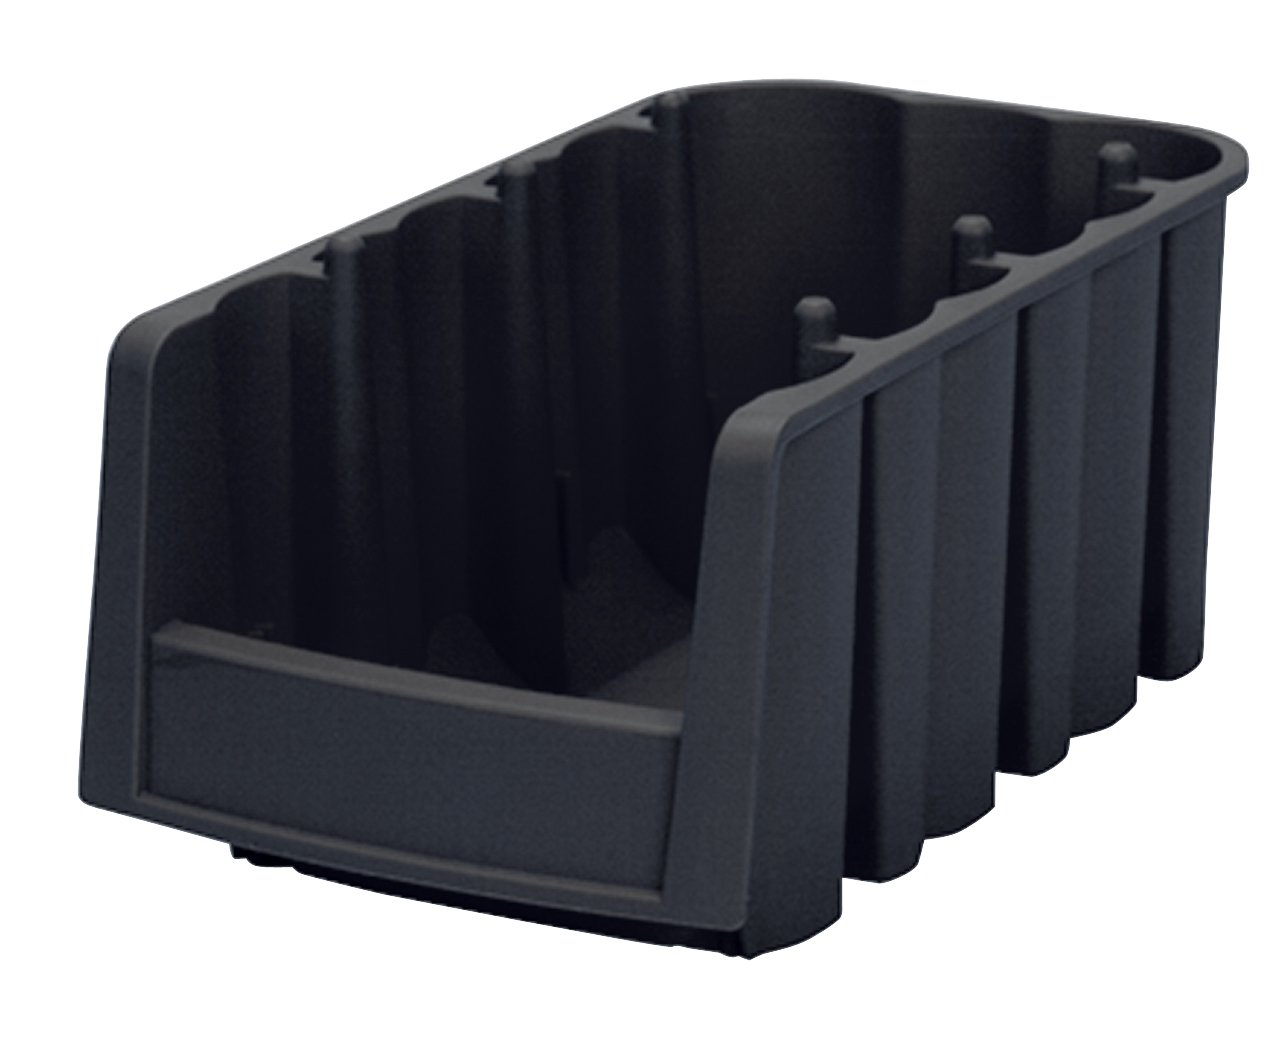 Akro-Mils 30716 Economy Stacking Nesting Plastic Storage Bin, 11-7/8-Inch Long by 6-5/8-Inch Wide by 5-Inch High, Black, Case of 10